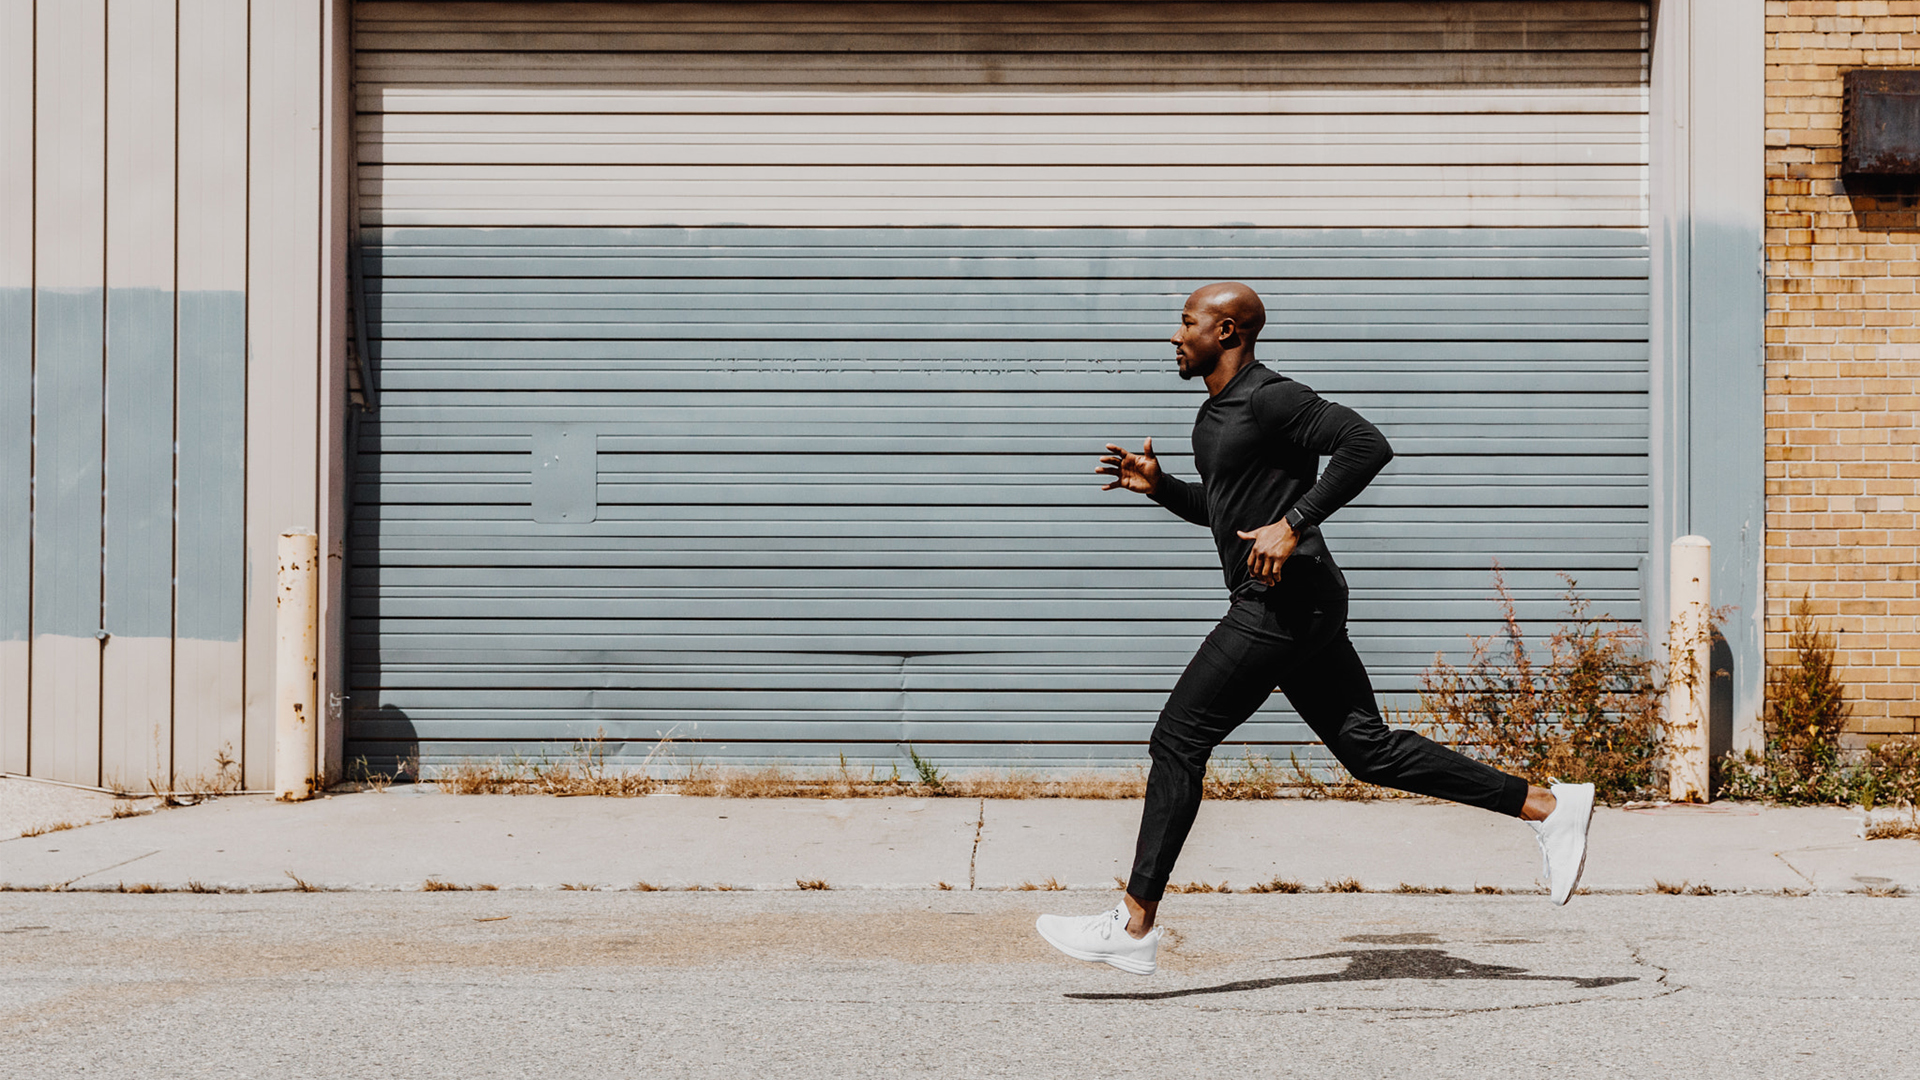 500px Blog » 500px Contributor Quest: 'Jog It Out' with